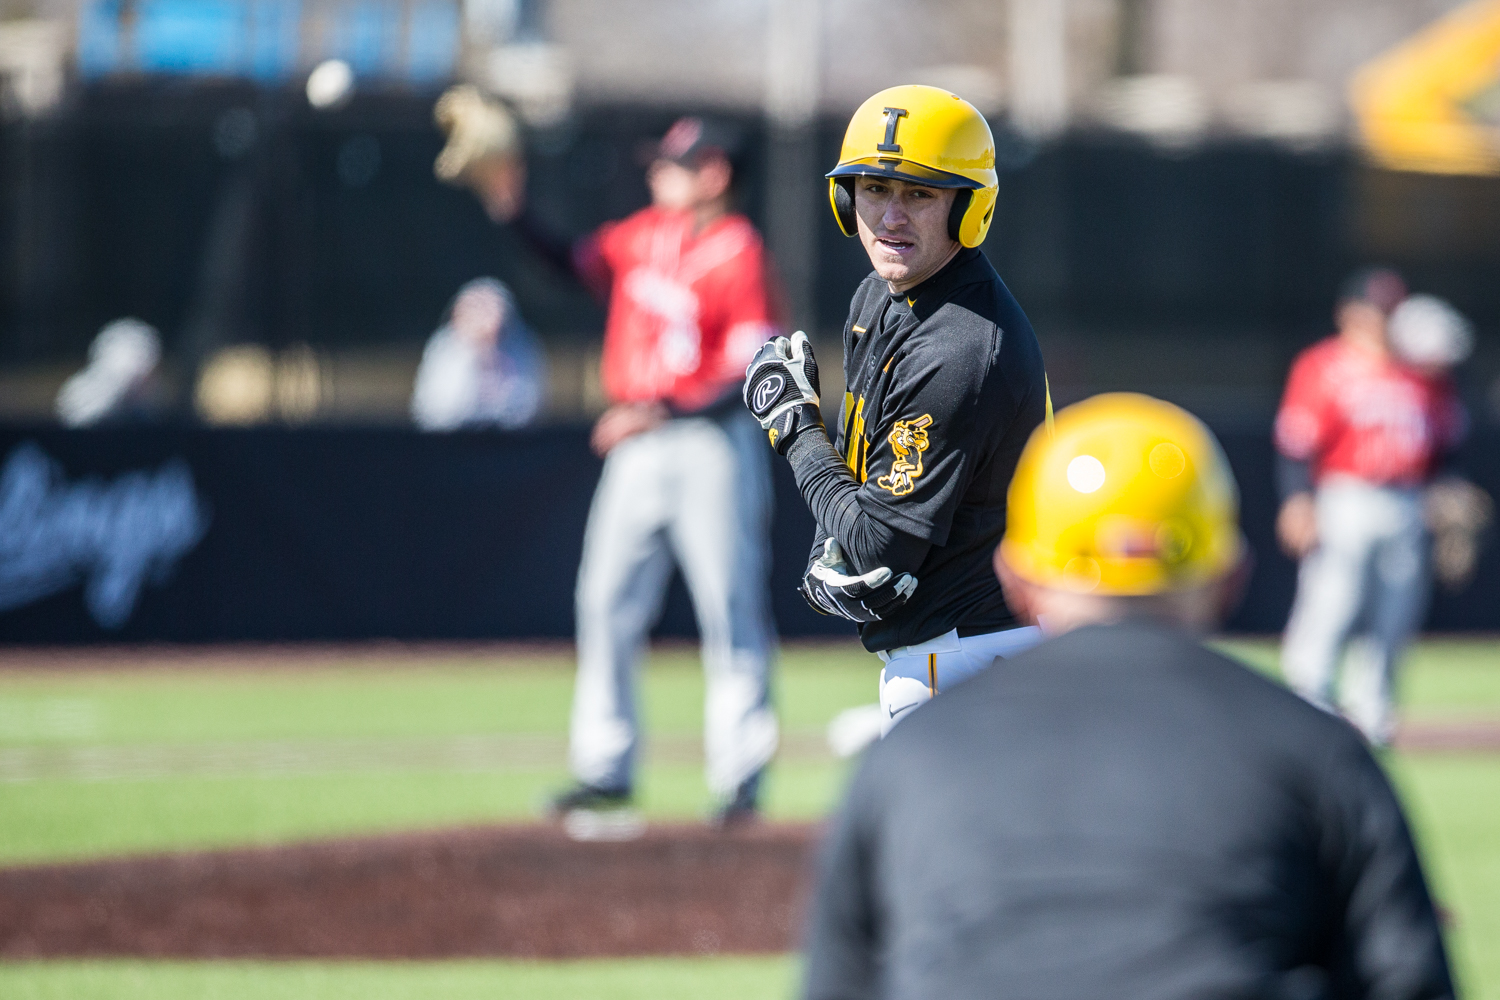 Iowa+infielder+Tanner+Wetrich+stands+at+first+base+during+the+first+game+of+a+baseball+doubleheader+between+Iowa+and+Cal-State+Northridge+at+Duane+Banks+Field+on+Sunday%2C+March+17%2C+2019.+The+Hawkeyes+defeated+the+Matadors%2C+5-4.